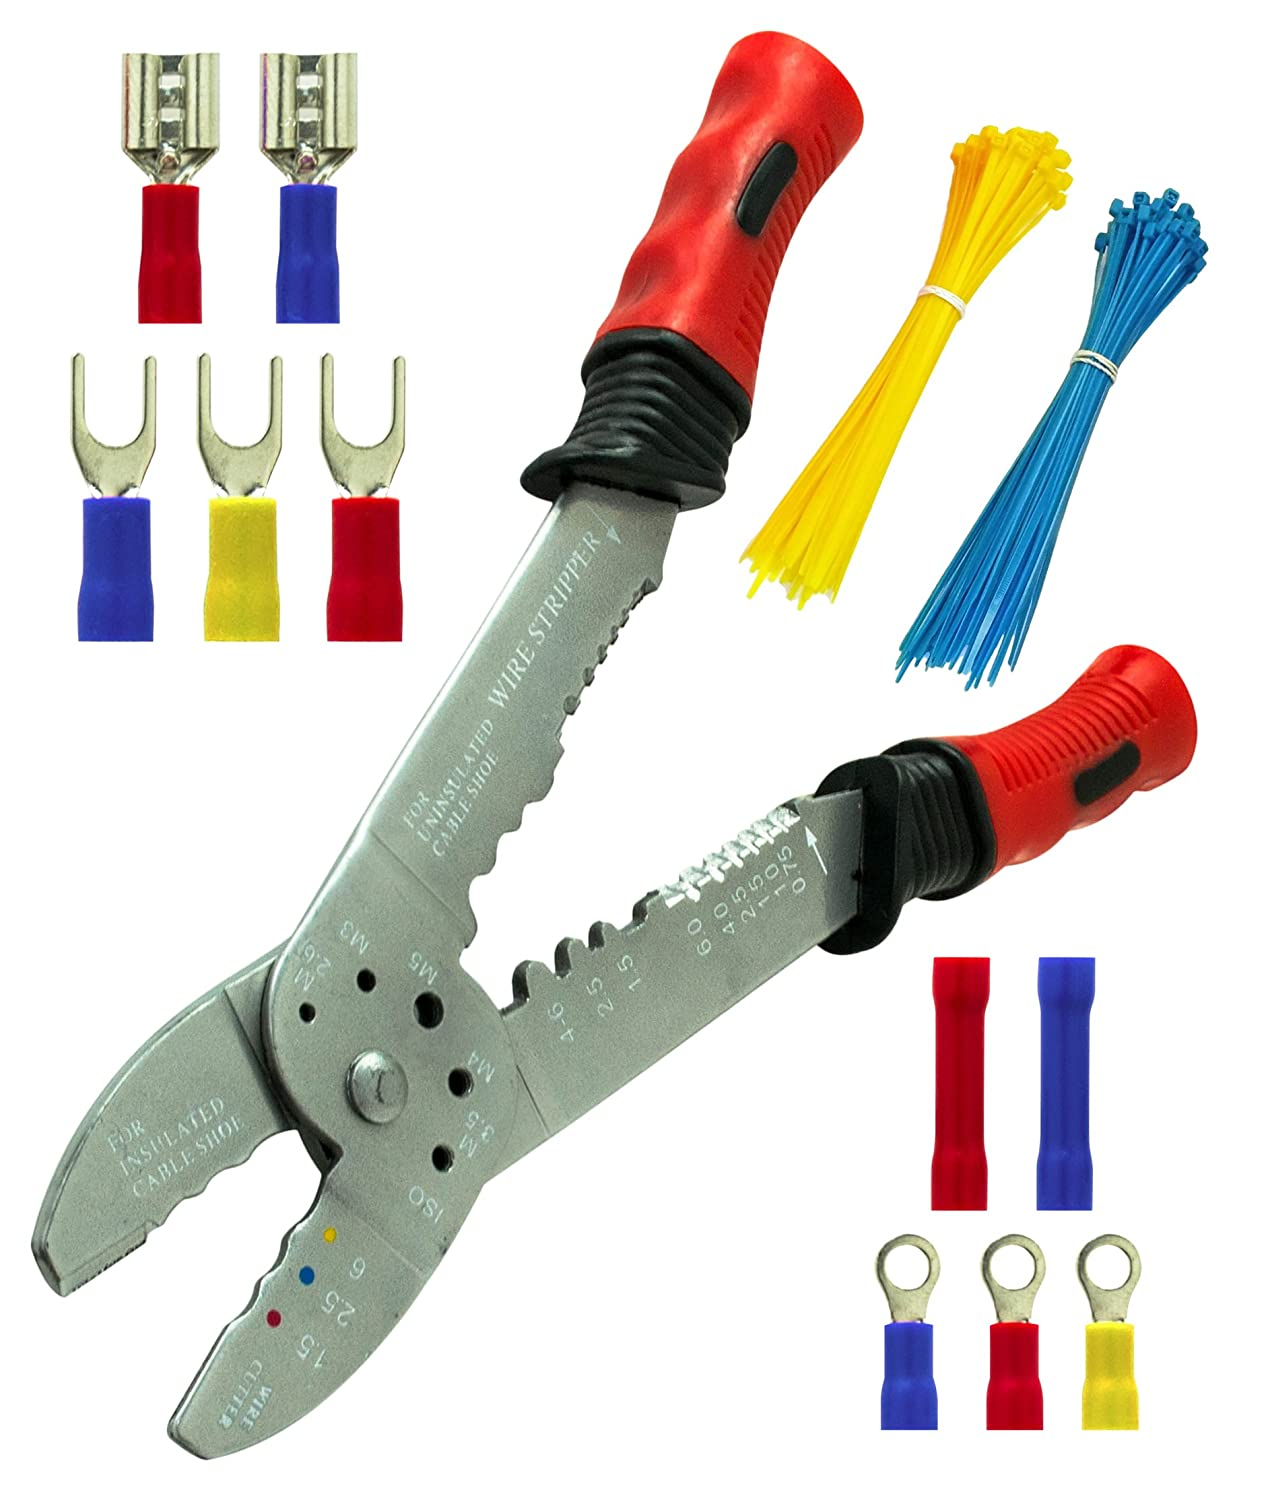 Bastex Wire Stripper/Crimping Pliers & Solder-less Clamp-On Terminal ...